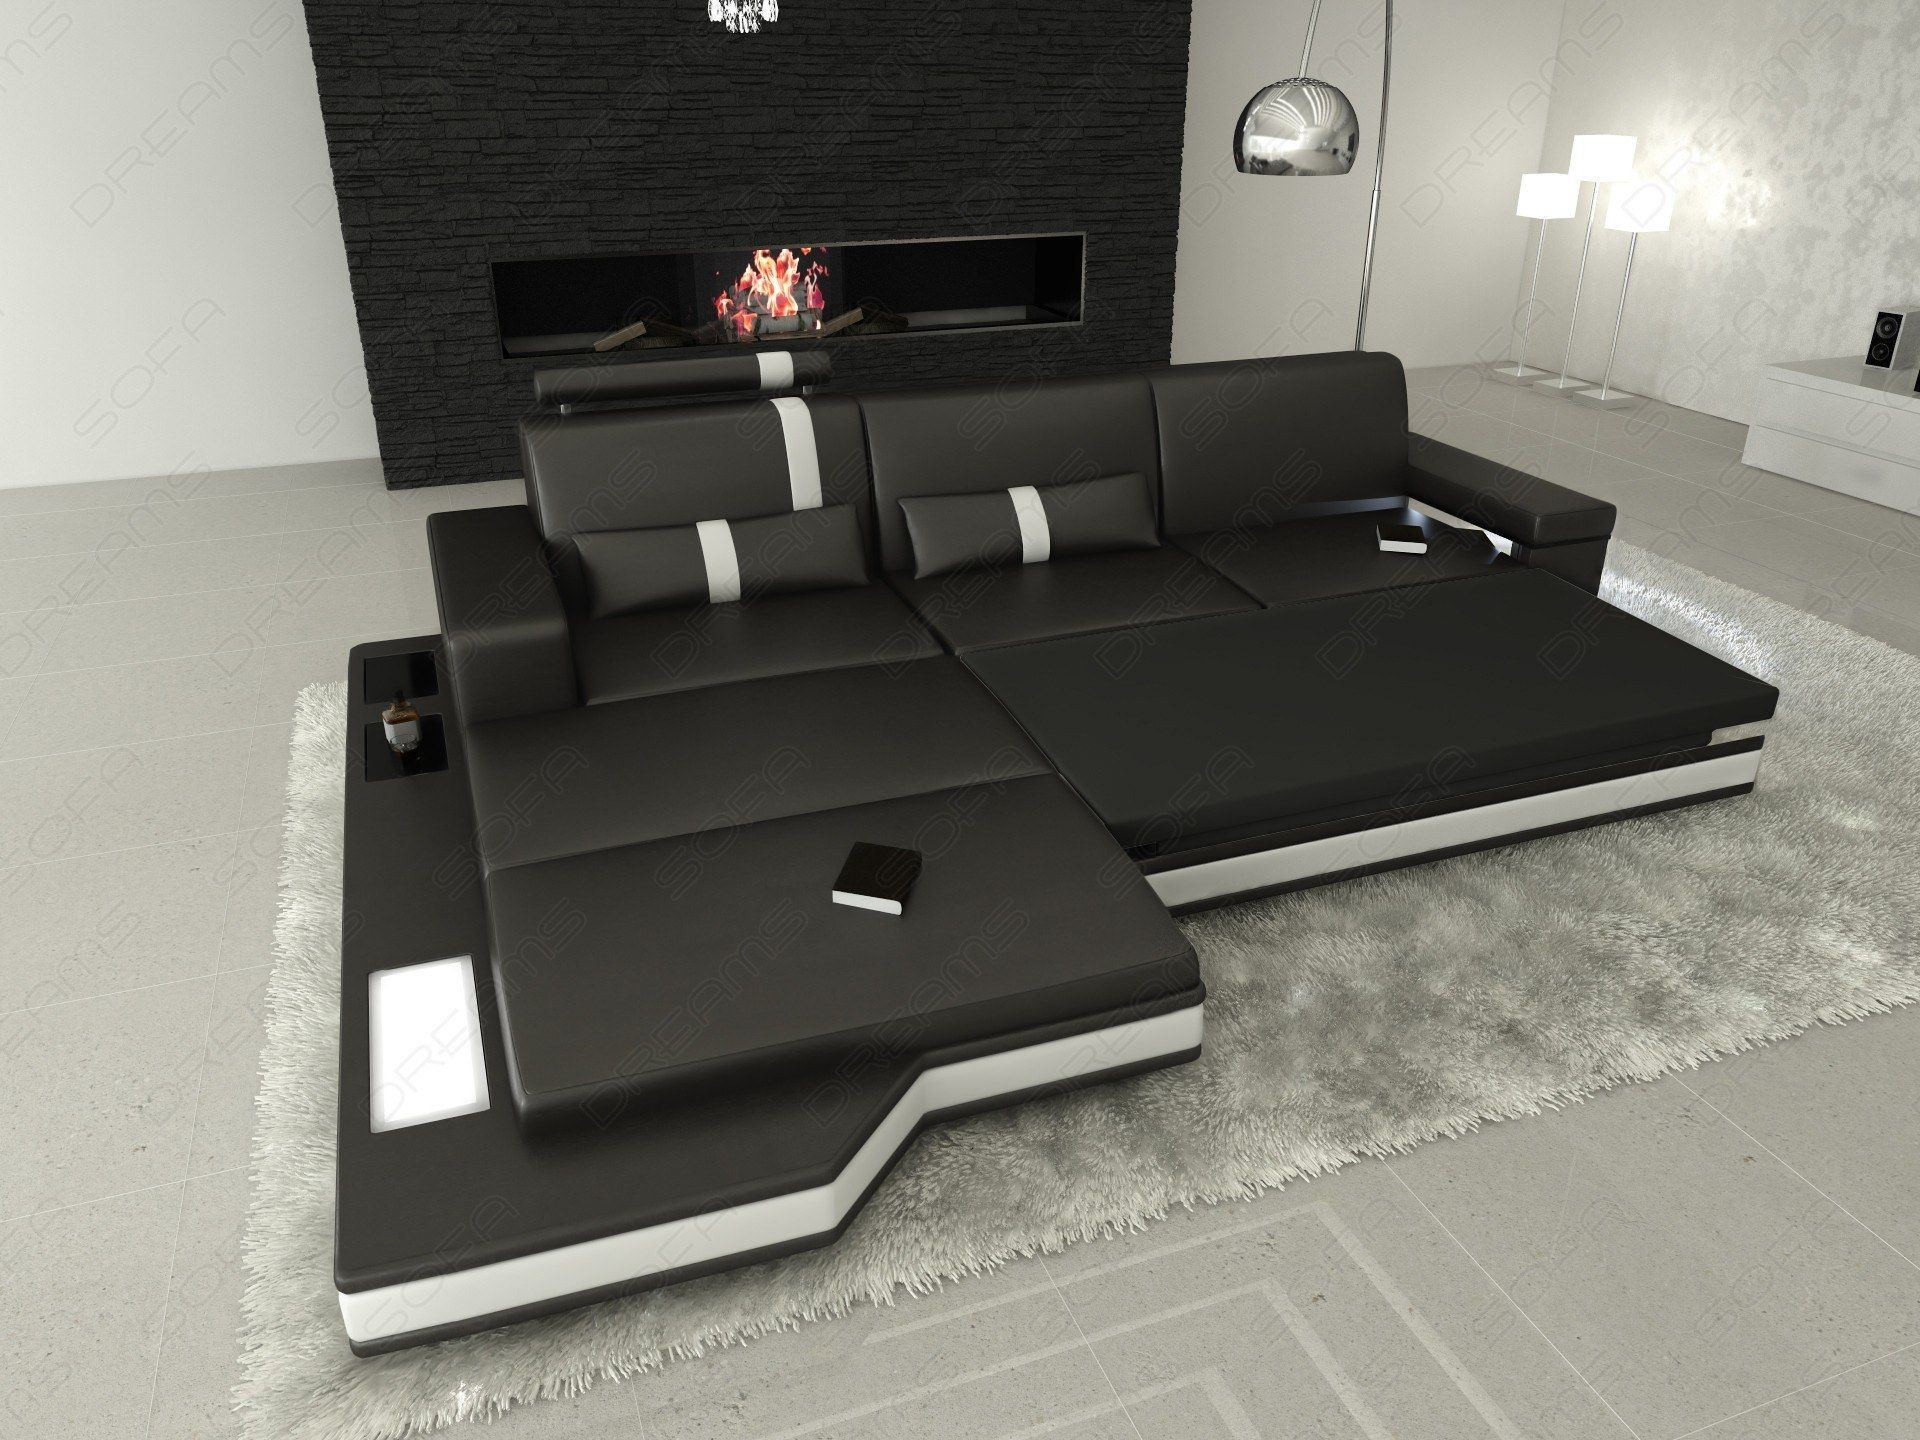 sofas ledersofa ledersofa messana l form led sofas g nstig online kaufen. Black Bedroom Furniture Sets. Home Design Ideas